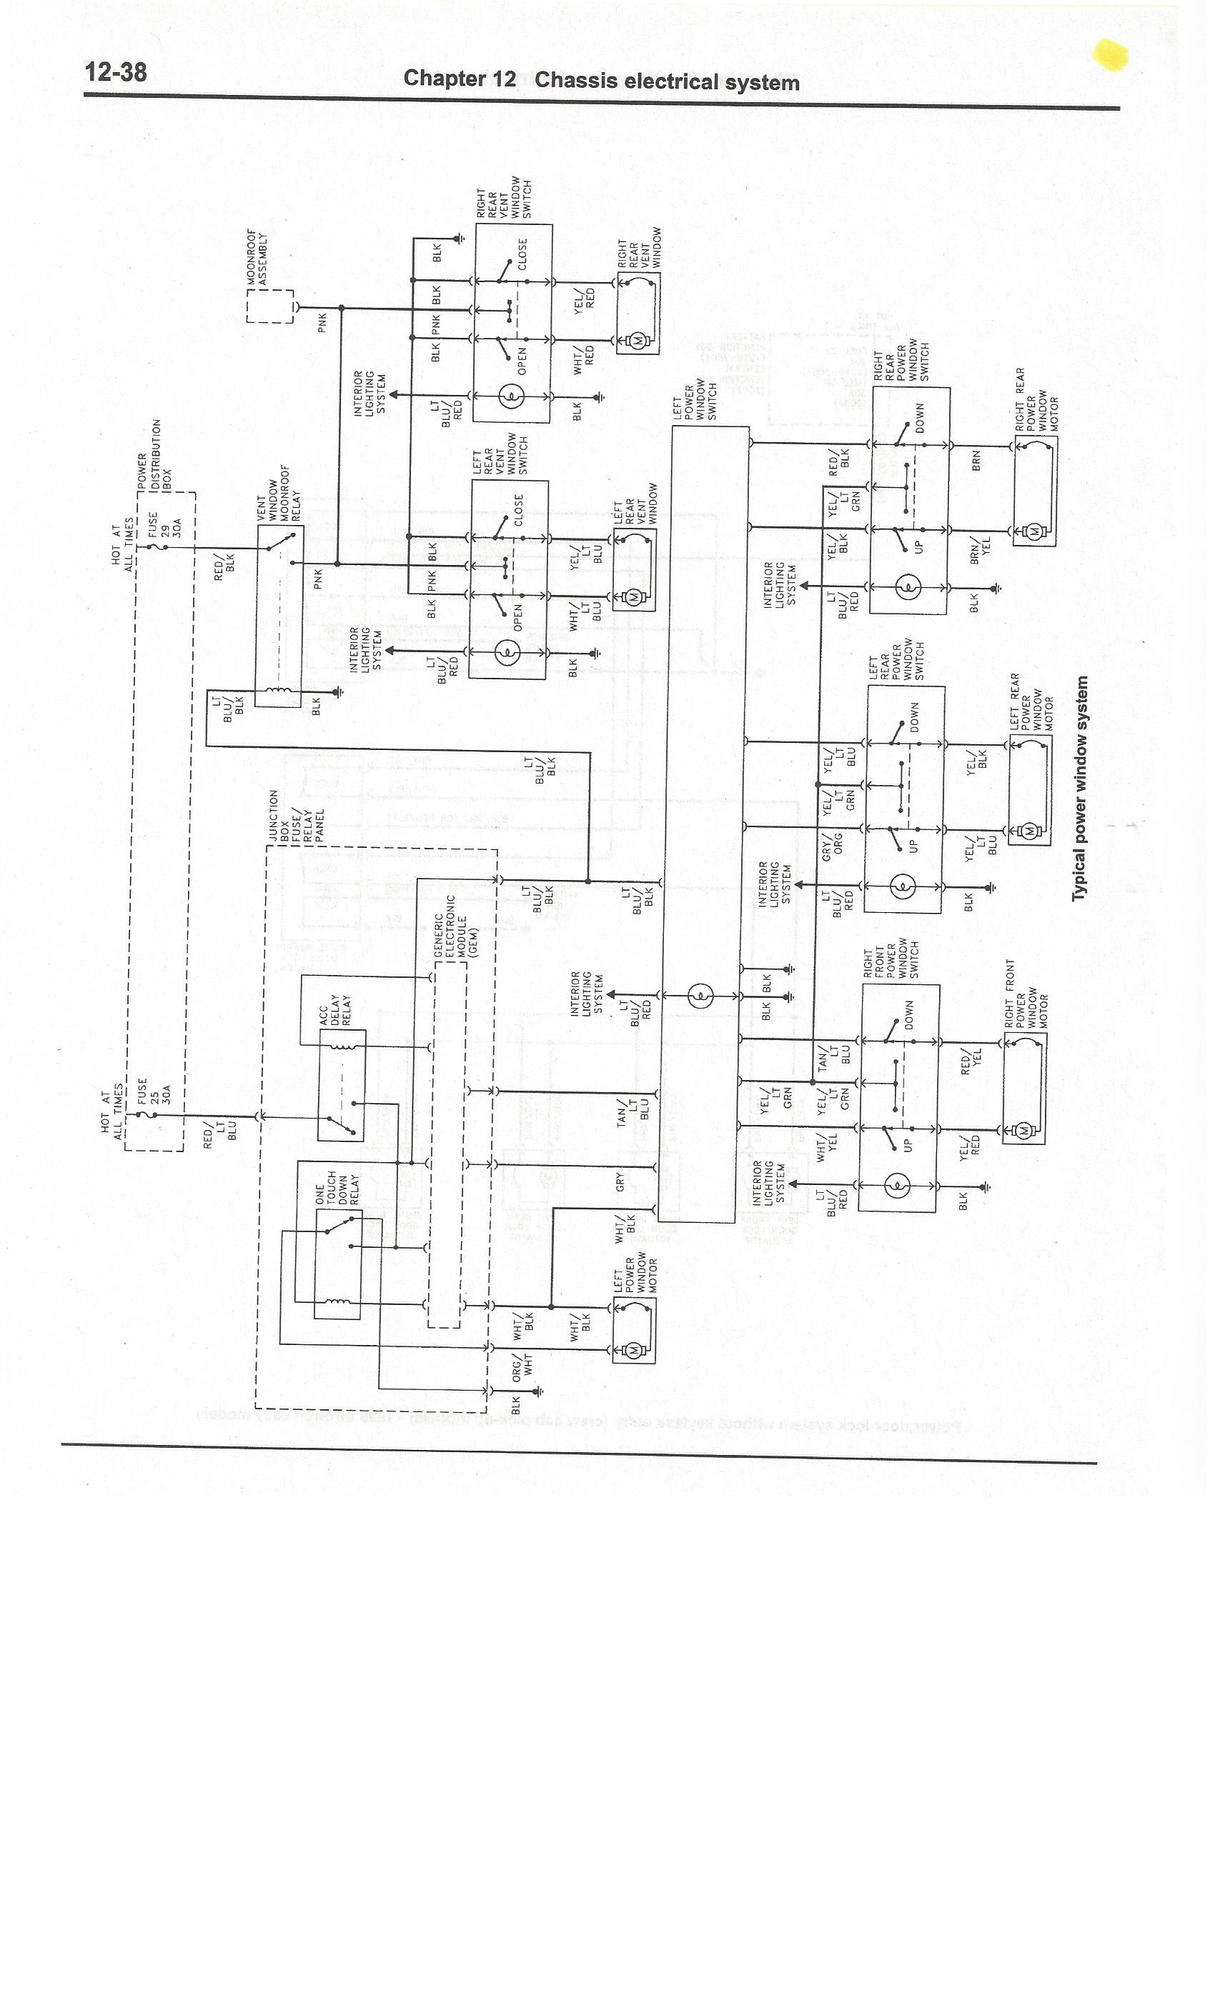 Revbase Wiring Diagrams : 23 Wiring Diagram Images